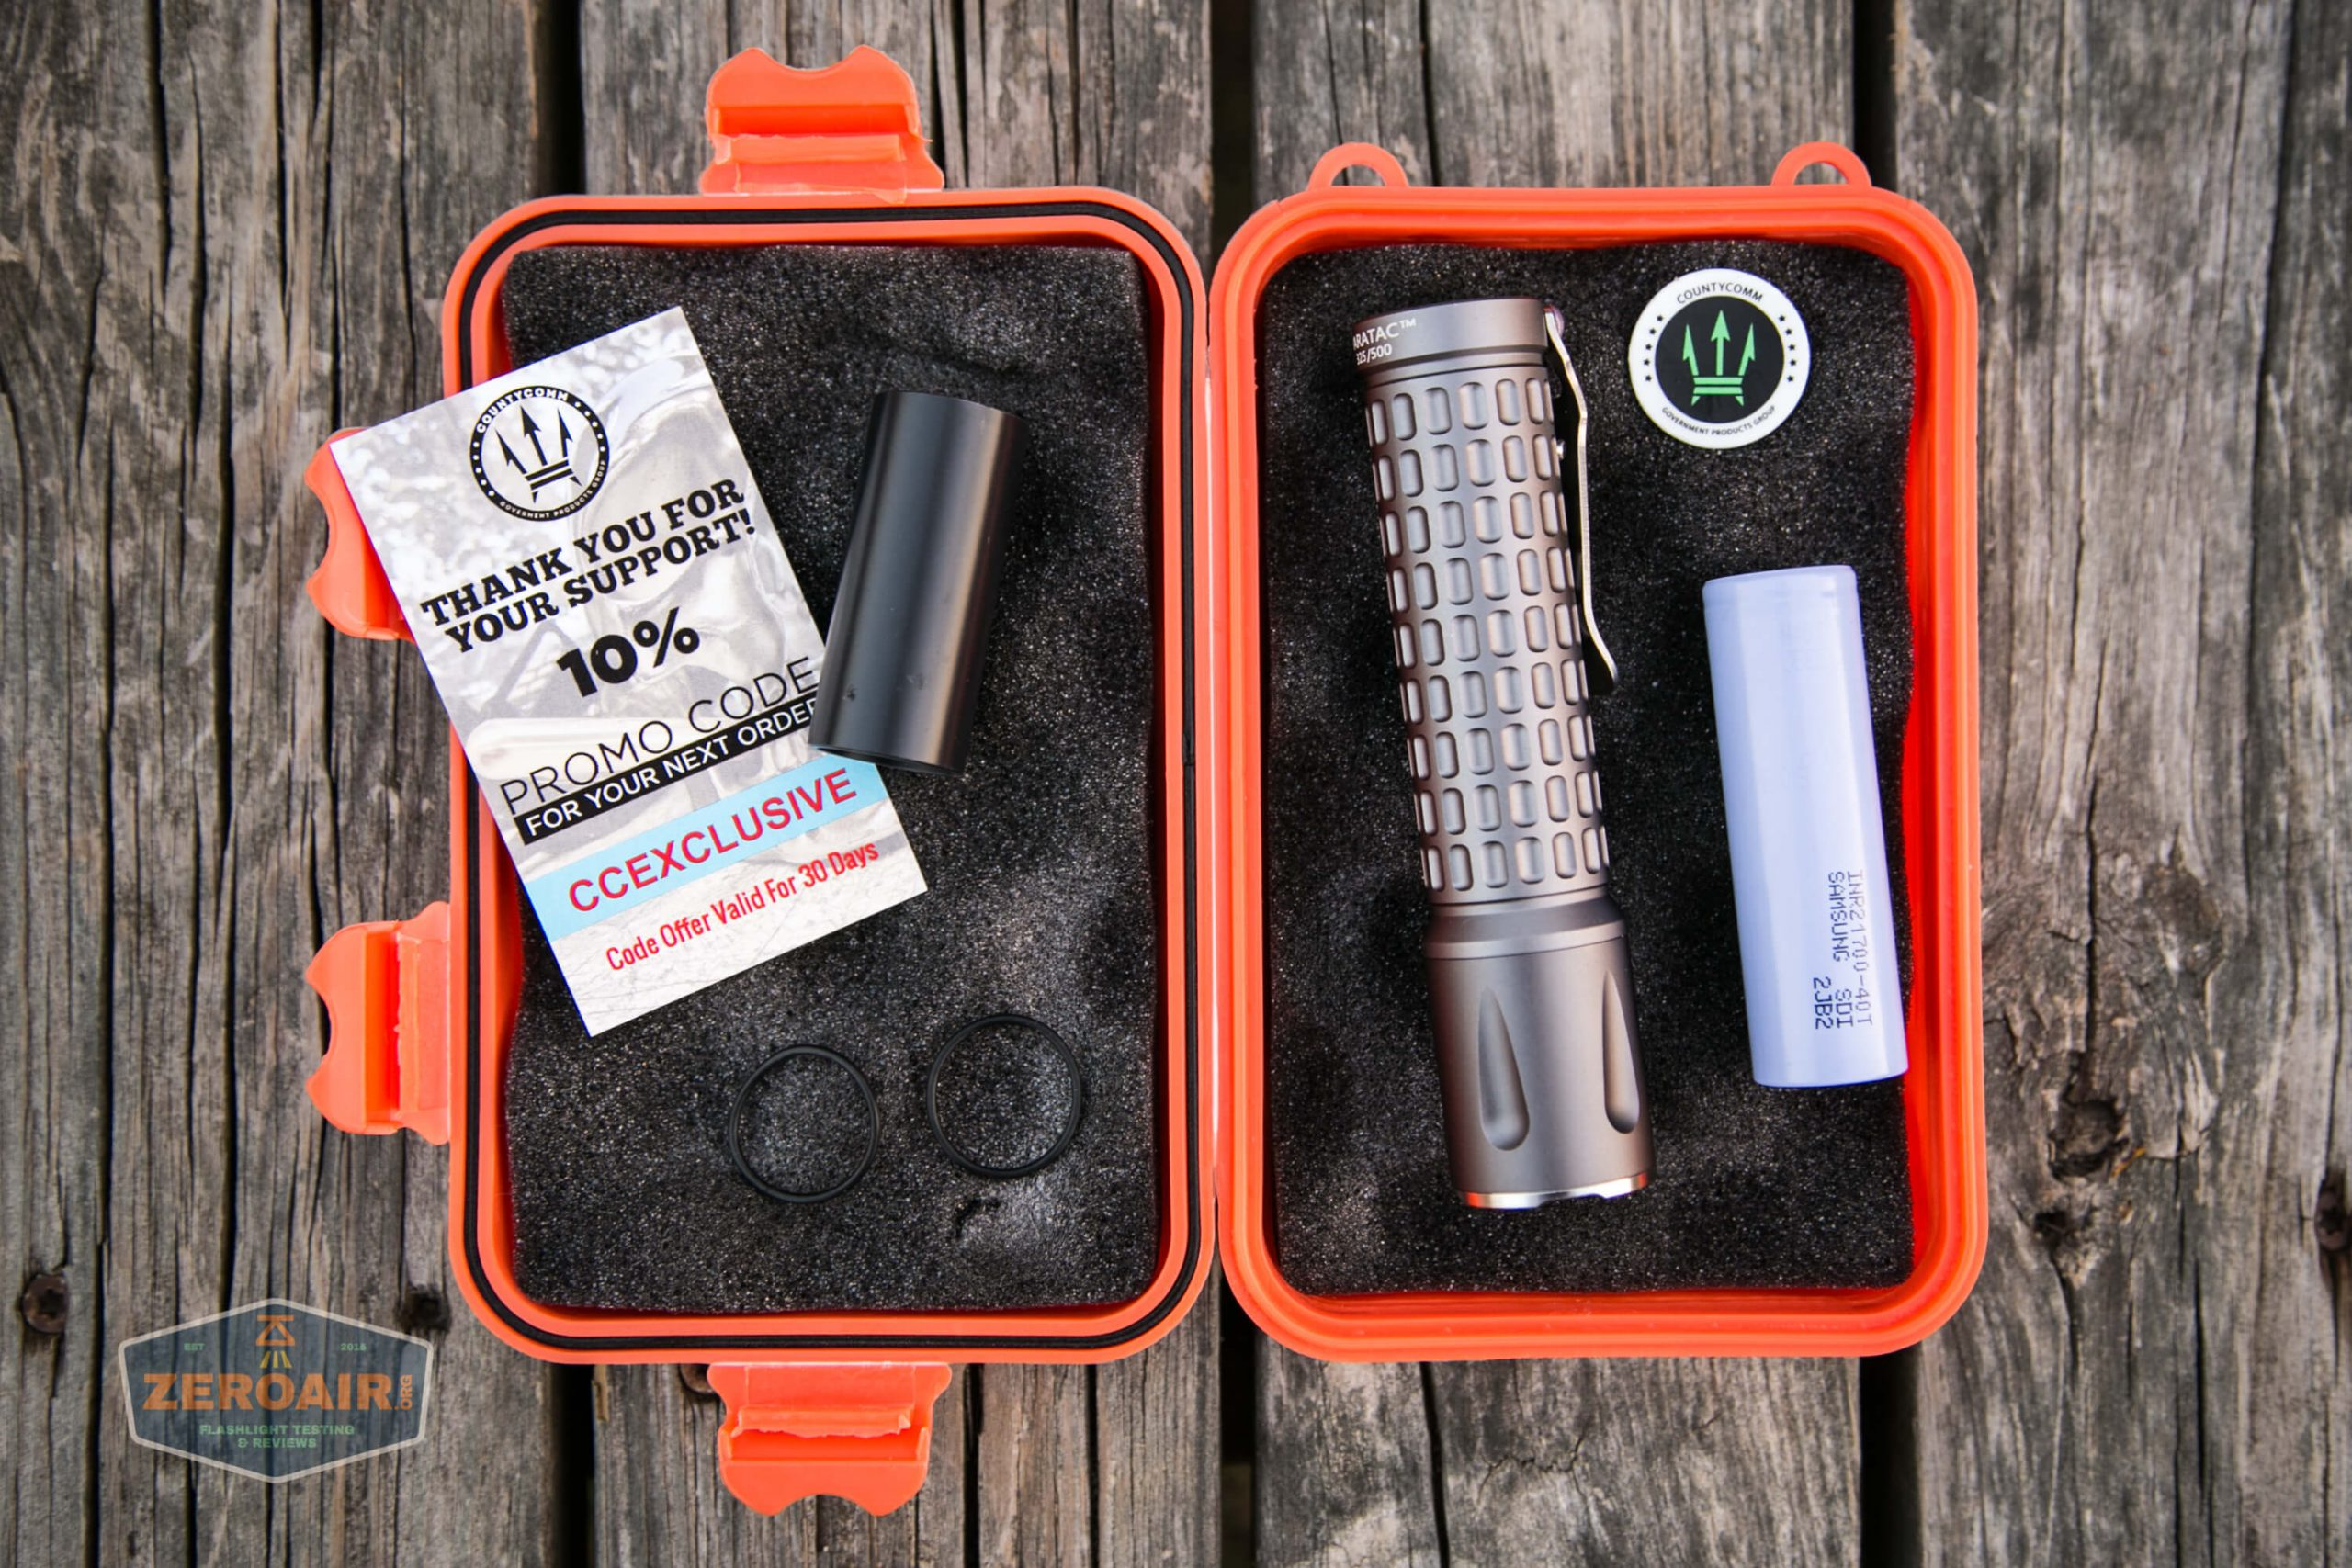 countycomm reylight 21700 quad emitter flashlight what's included